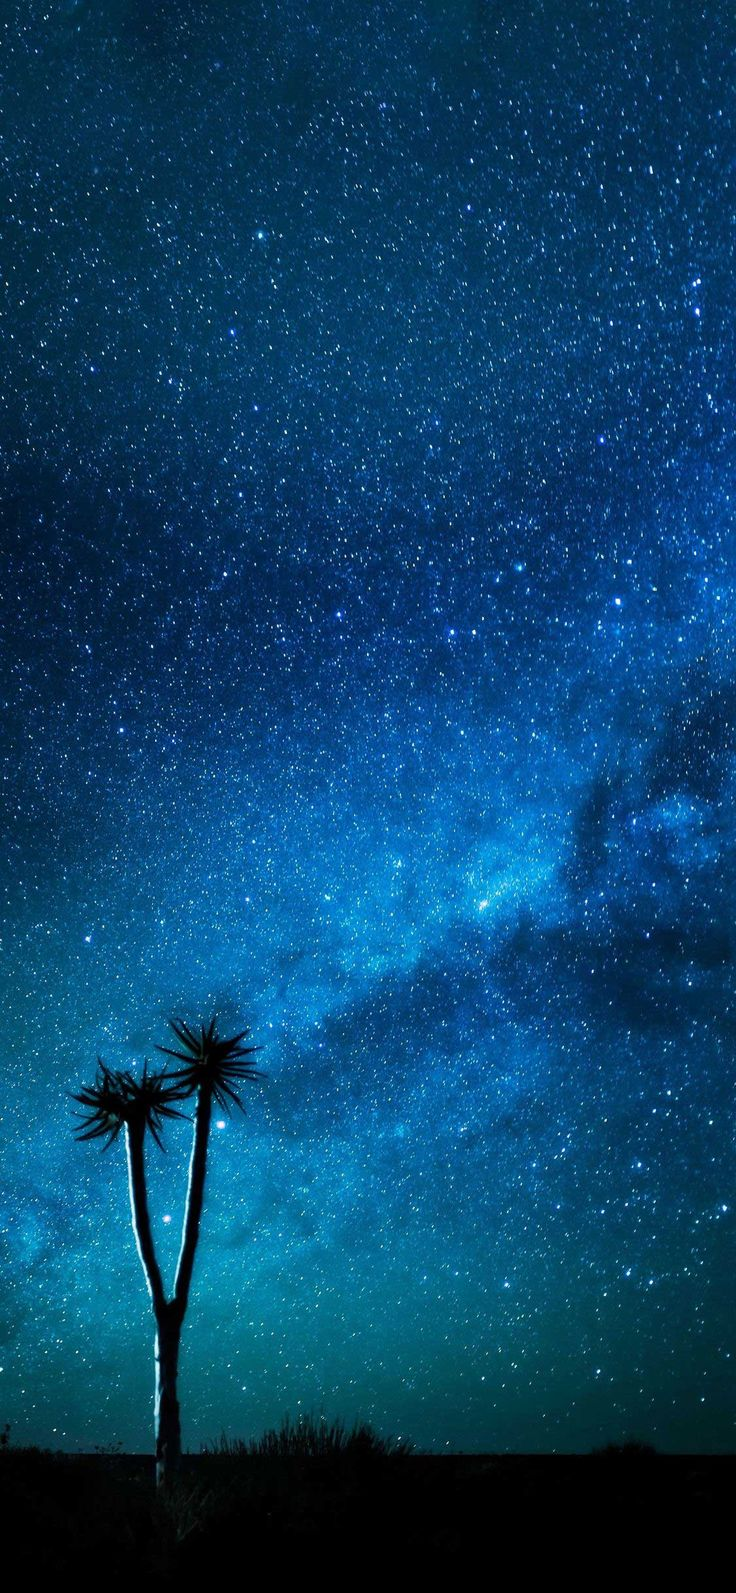 Hd Wallpapers For Iphone Wallpaper iphone various II ...